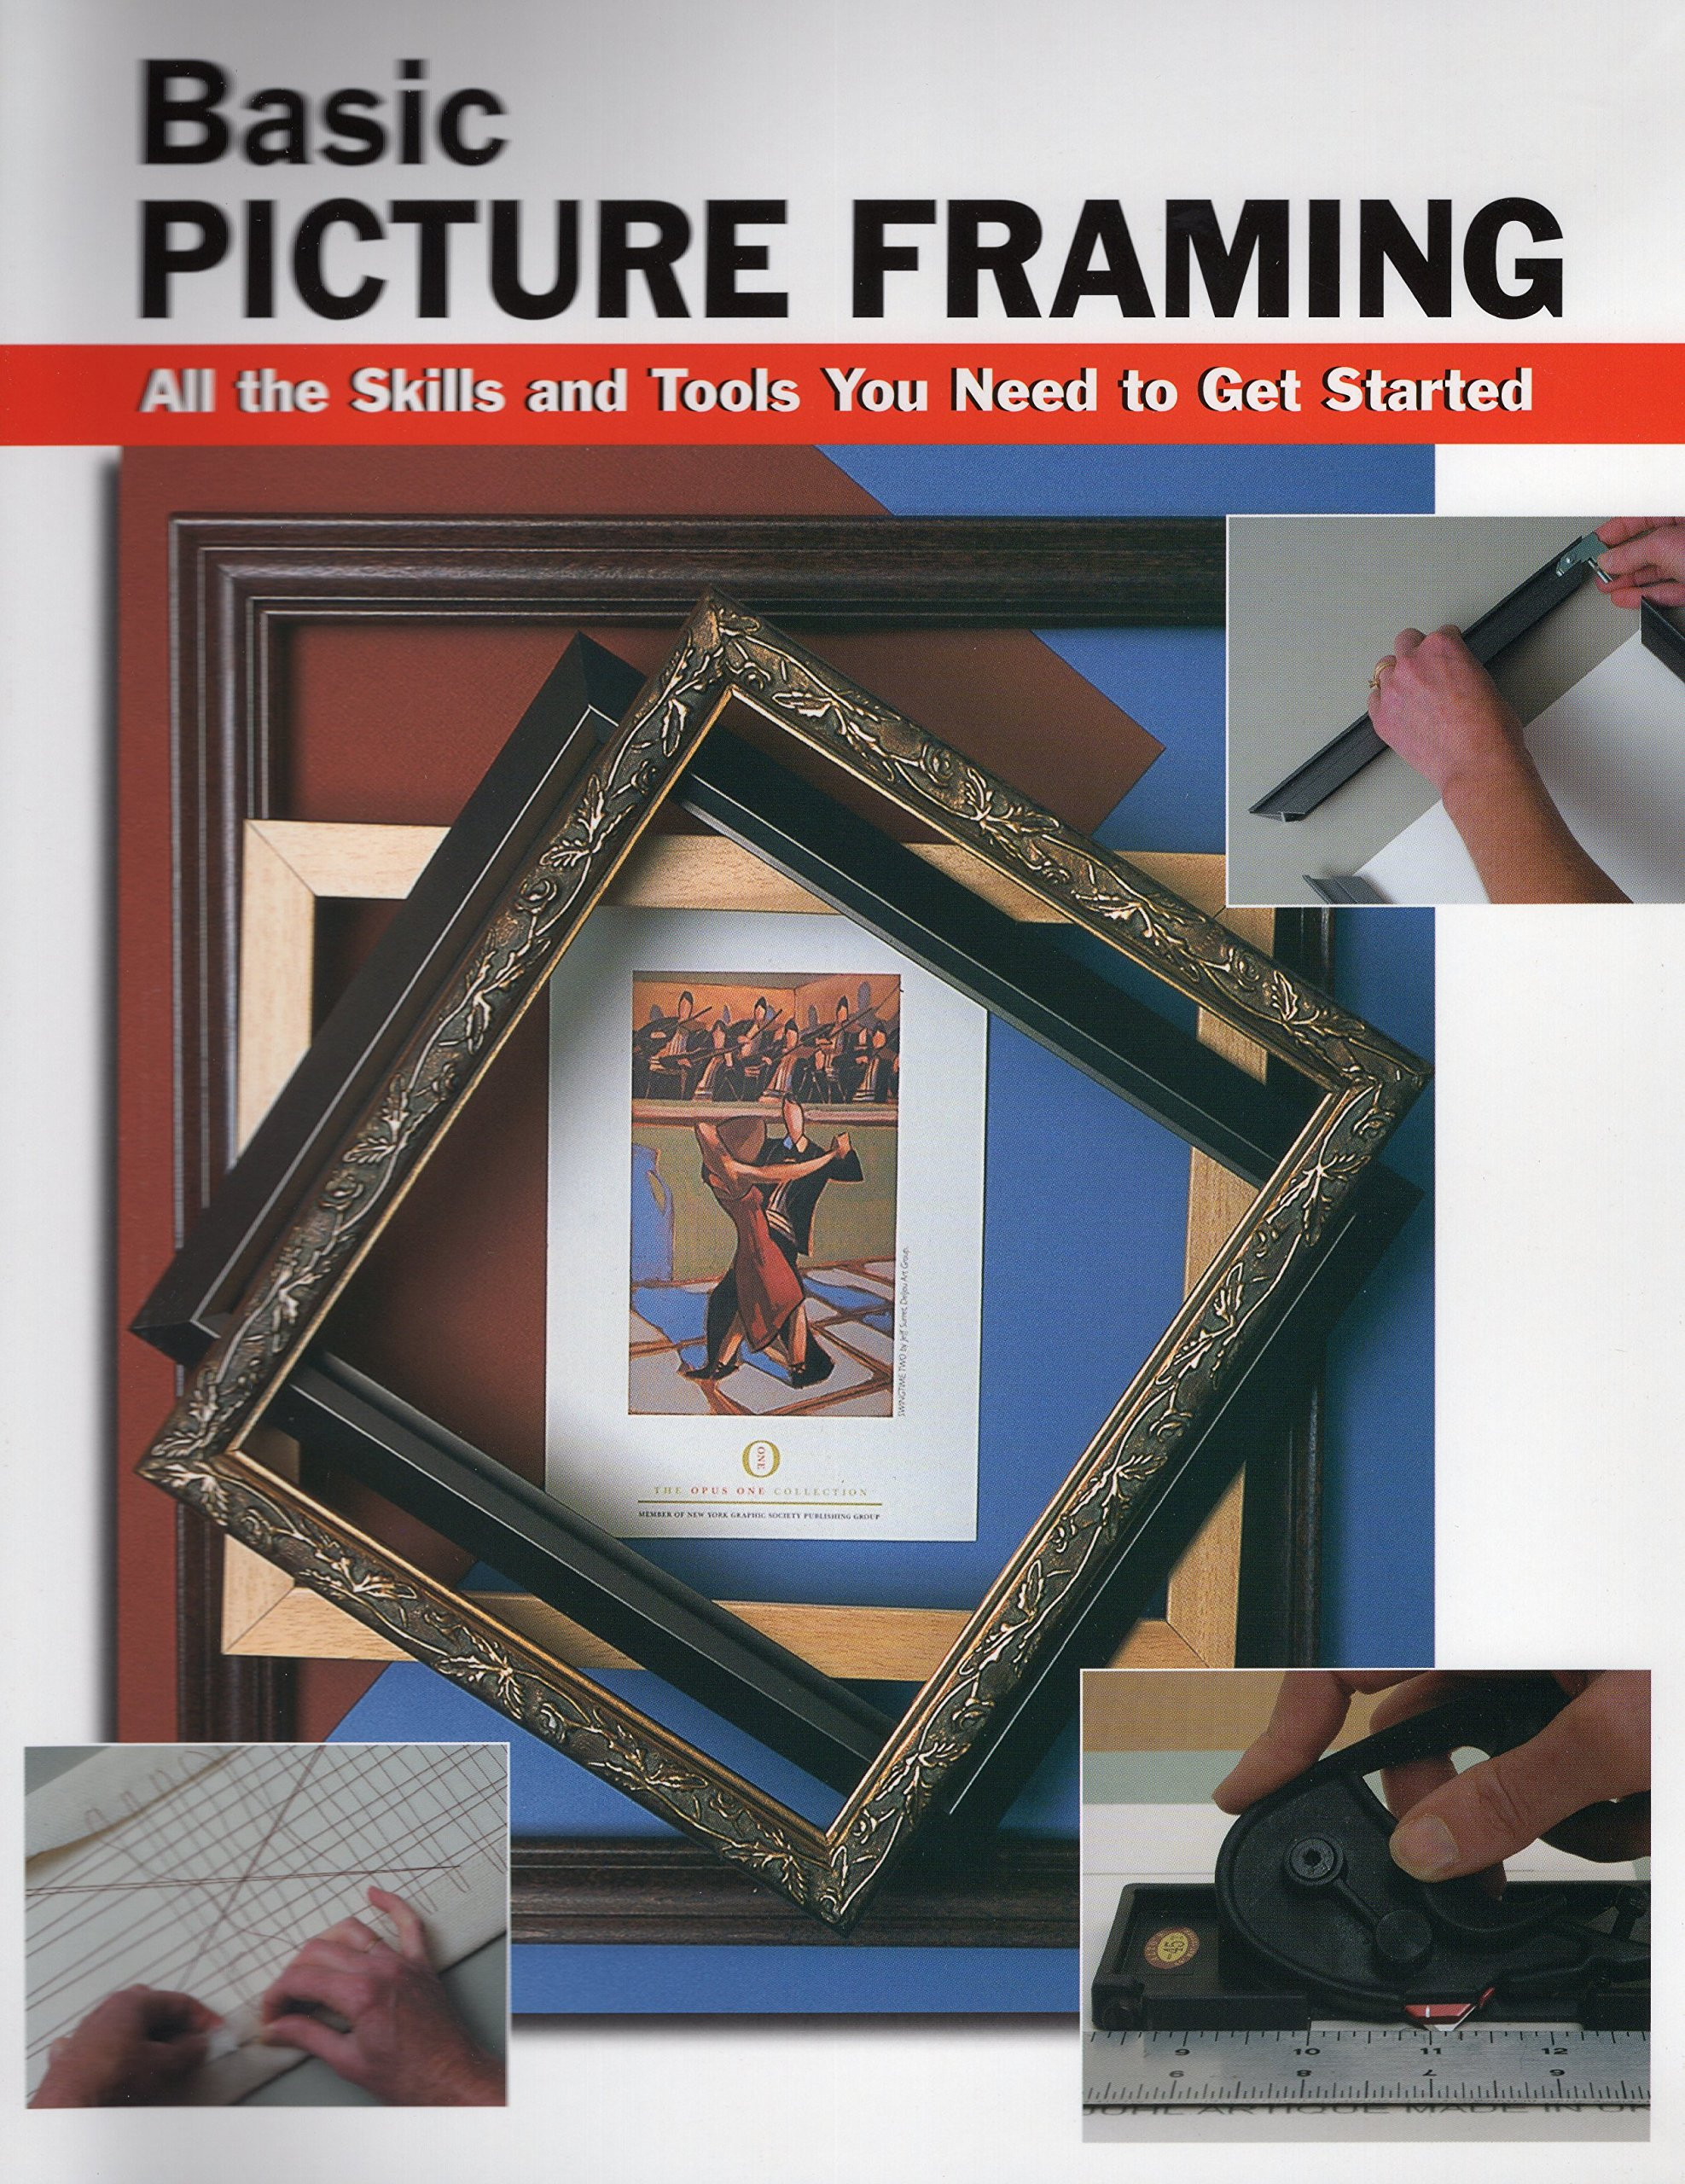 Basic picture framing all the skills and tools you need to get basic picture framing all the skills and tools you need to get started how to basics amy cooper alan wycheck debbie smith voight 0011557031782 jeuxipadfo Images